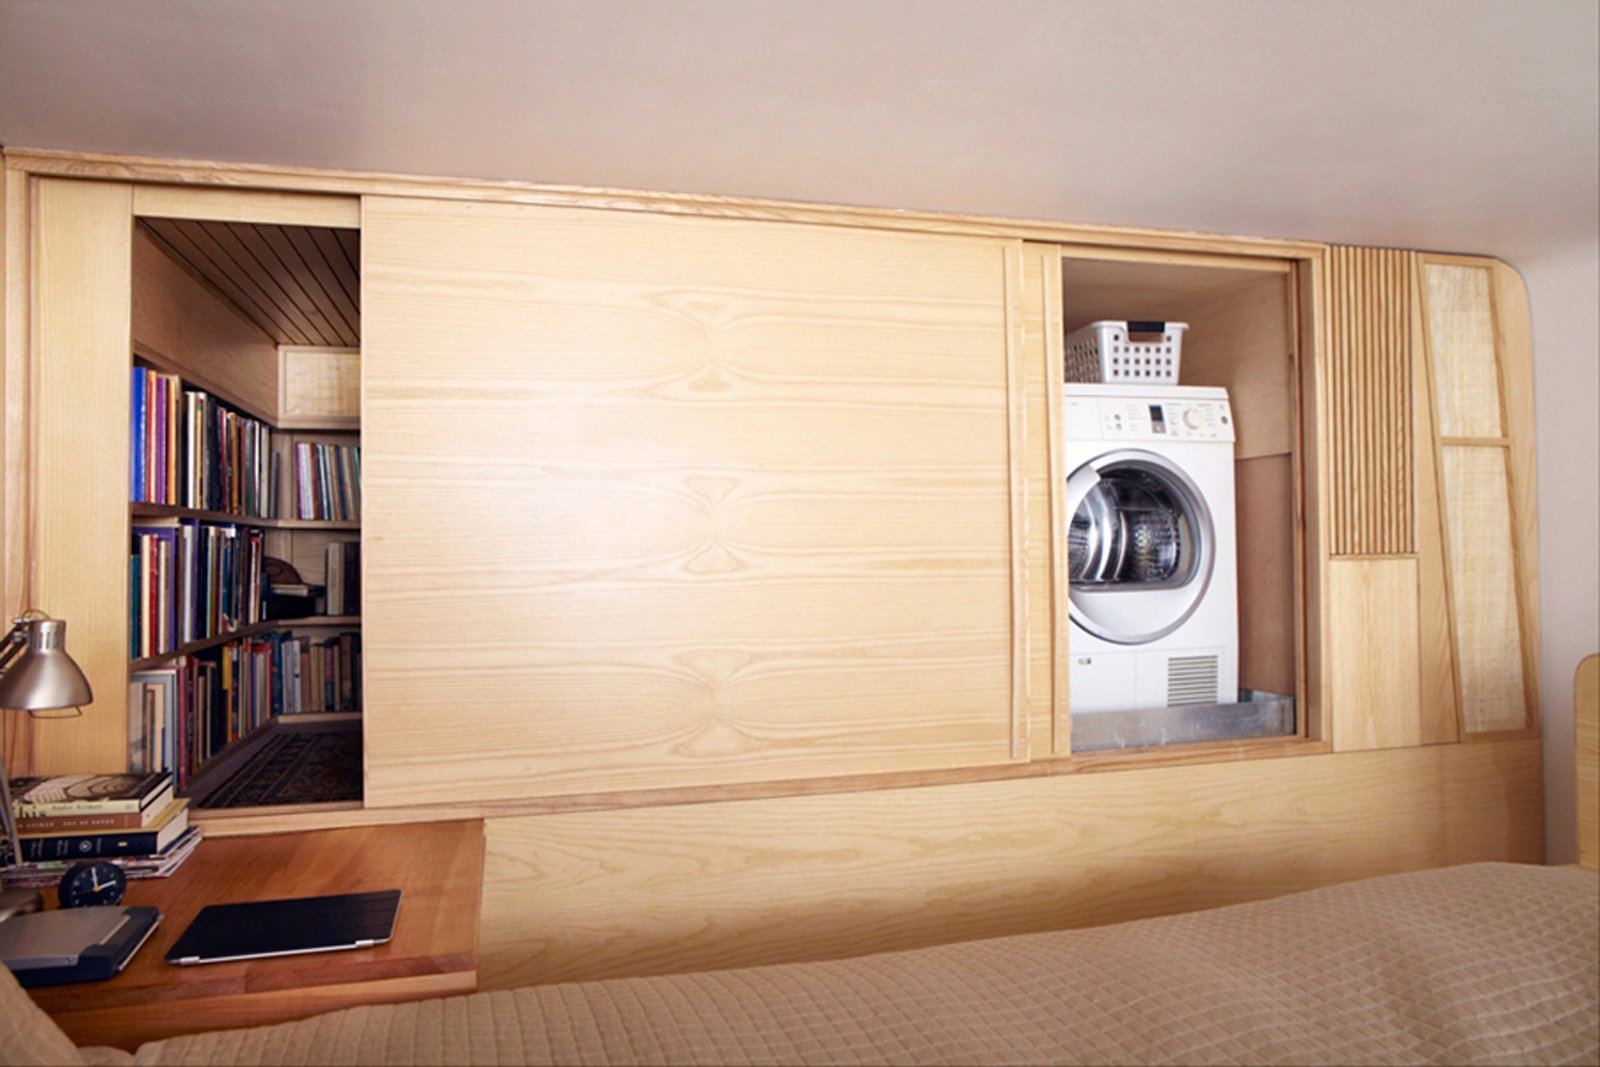 Photo 3 of 8 in Space-Saving Wood-Paneled Apartment in Manhattan